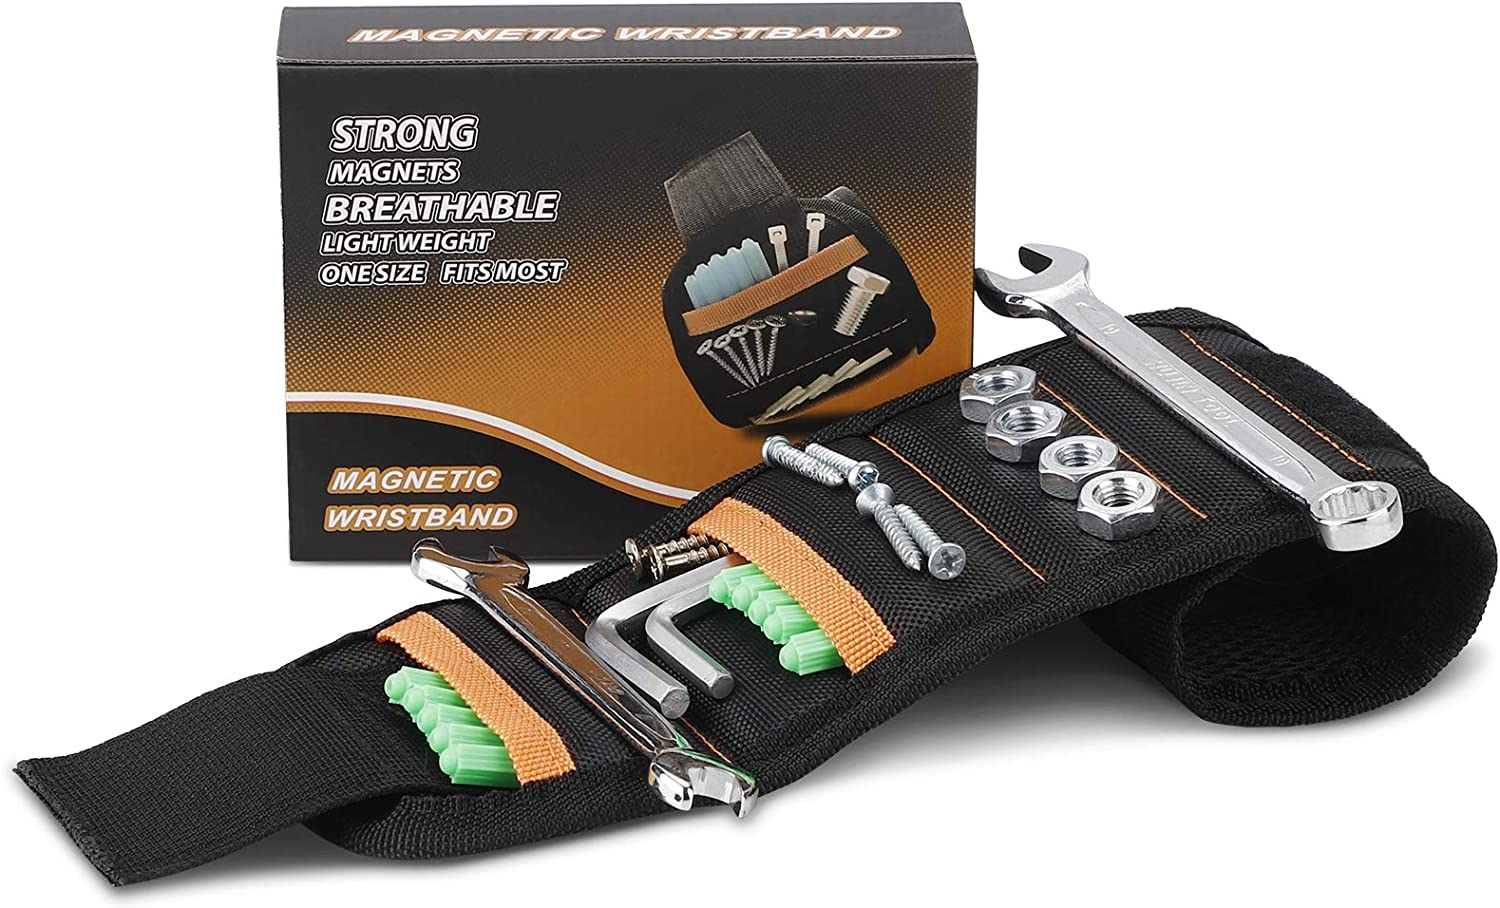 WeaArco Magnetic Wristband Weekly update Tool 4 years warranty Belt 20 with Strong Ma